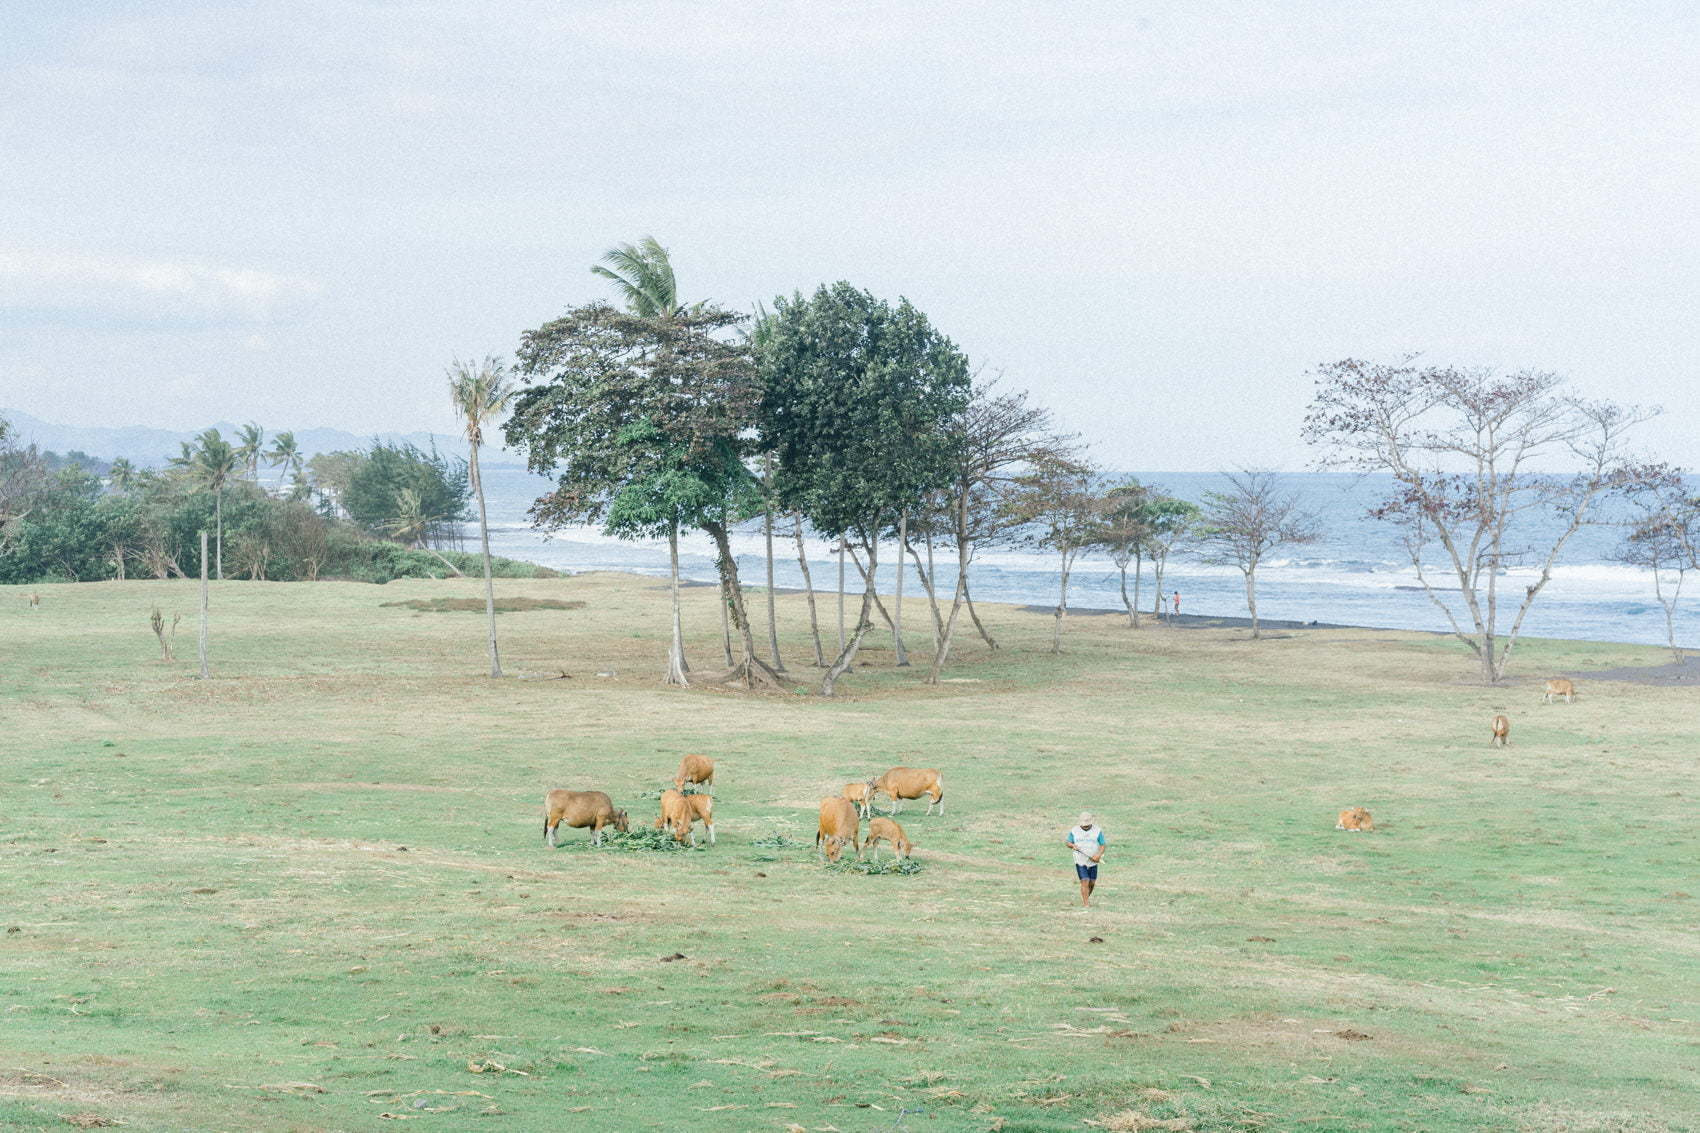 A farmers walking in between his cows in Saba Beach